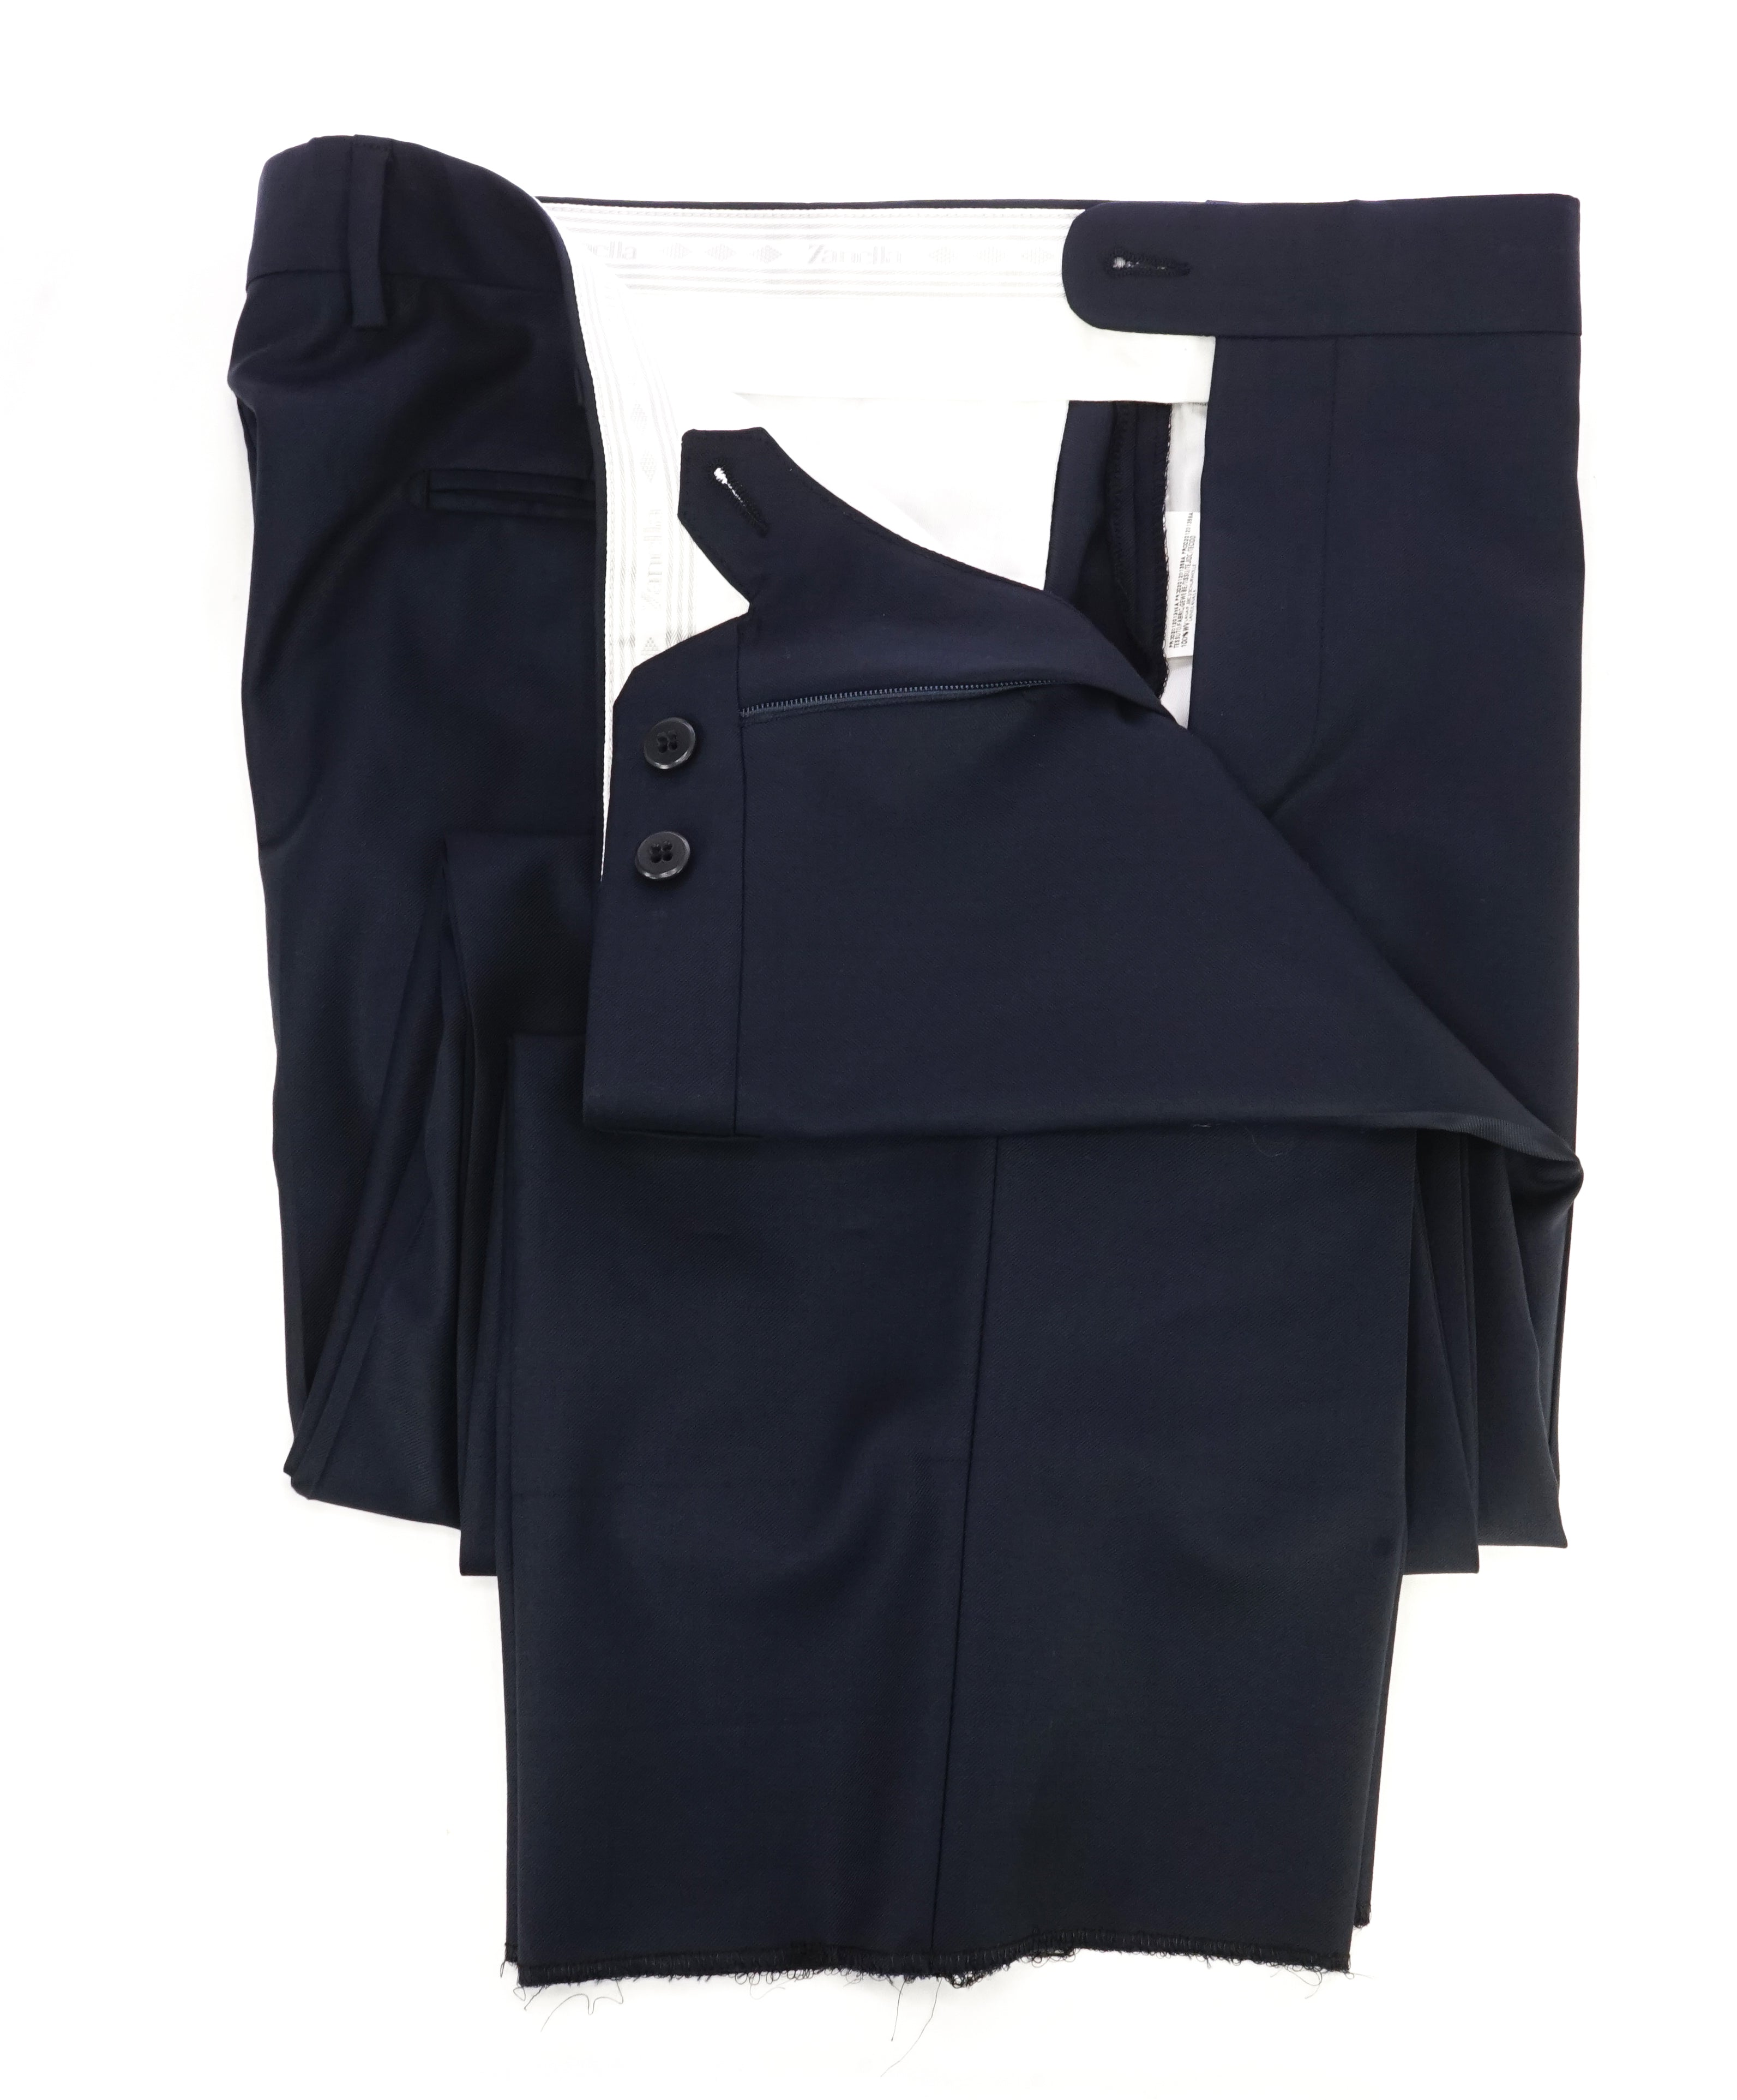 "ZANELLA - ""DEVON"" Solid Navy Blue Wool Flat Front Pants - 38W"